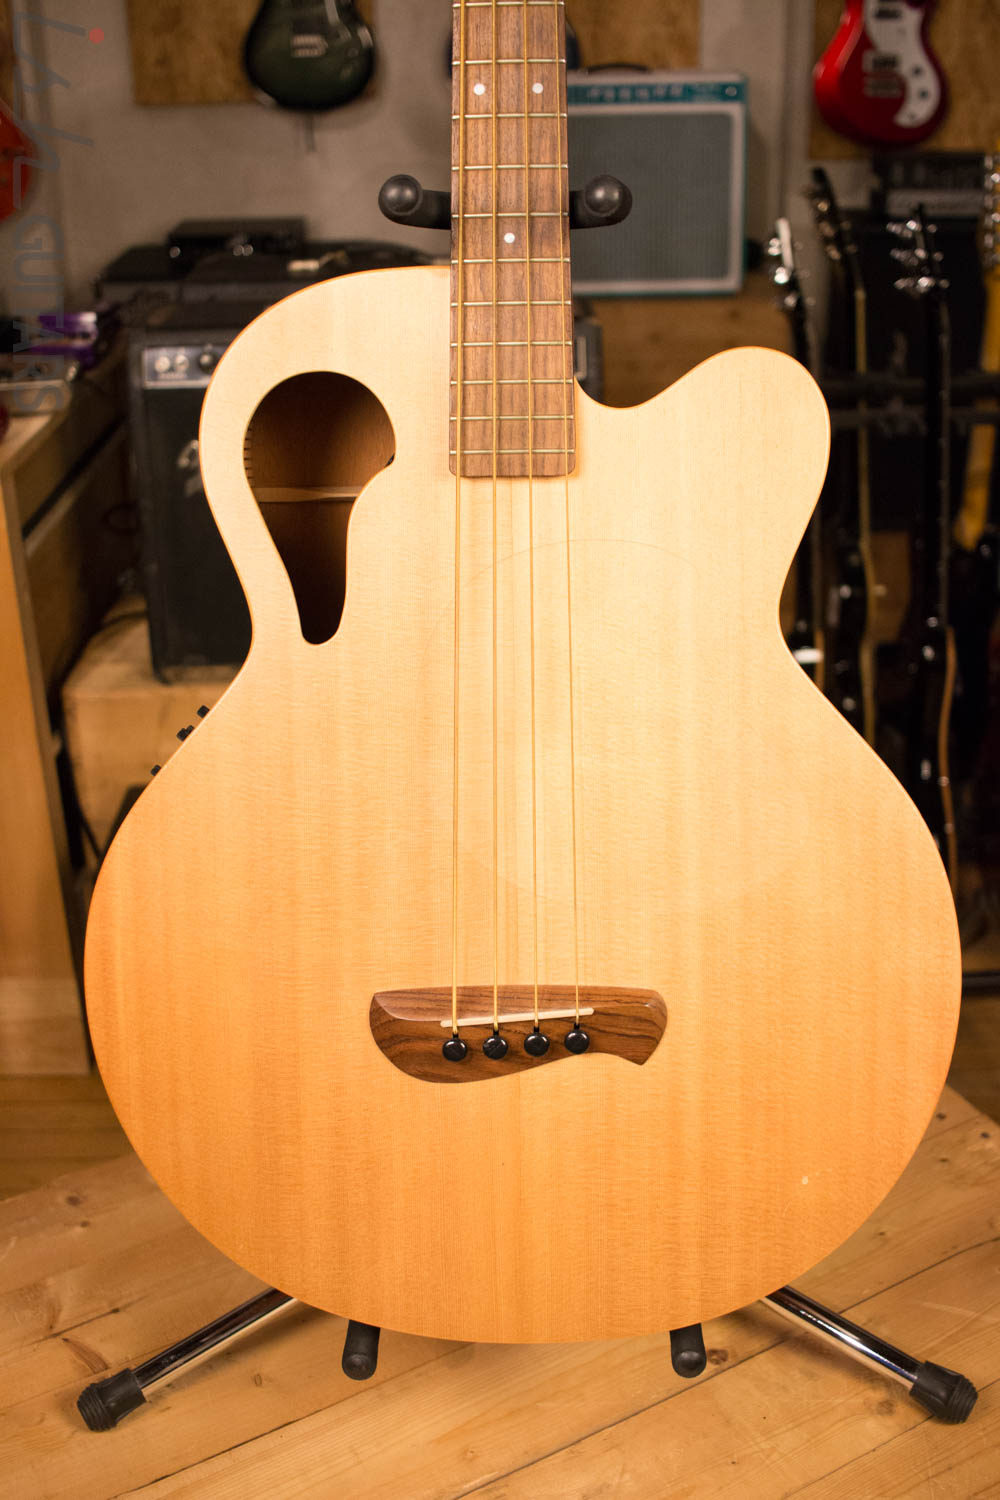 Tacoma Thunderchief CB10C Acoustic Bass with Electronics